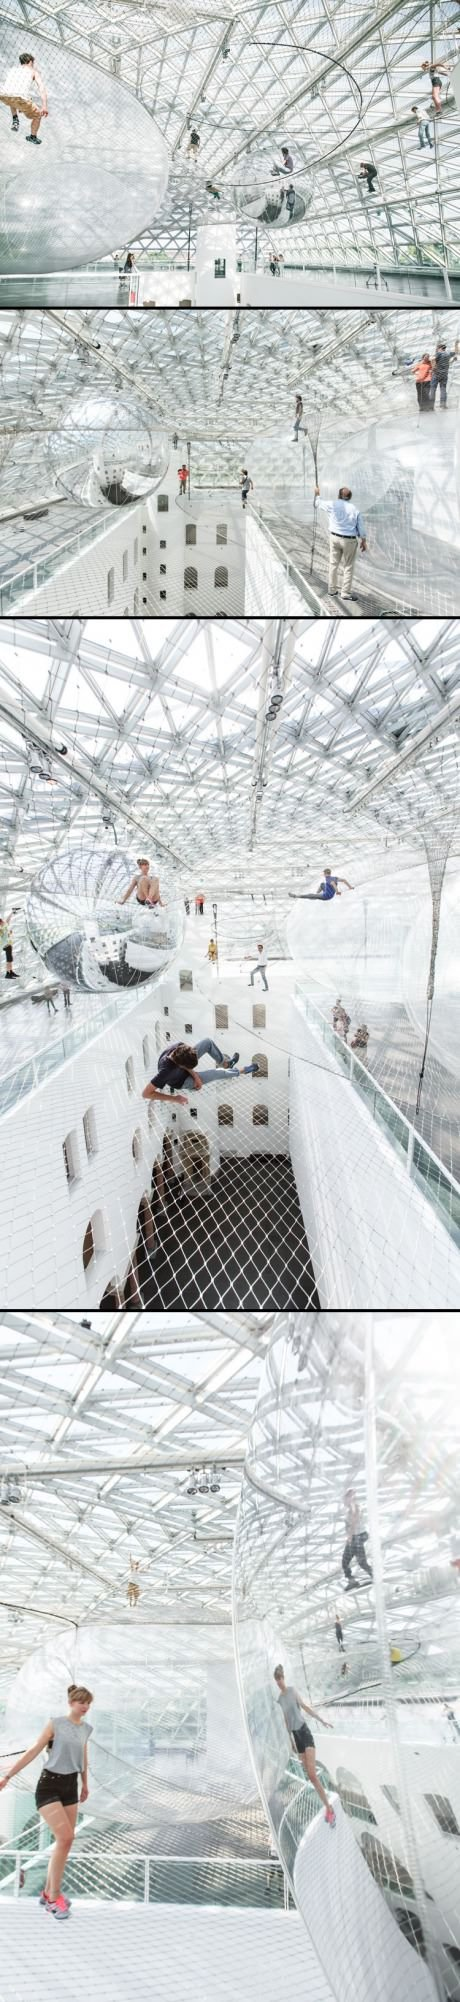 Artist Tomás Saraceno installed a 2500 square meters playground at a height  of 25 meters in Düsseldorf, Germany.